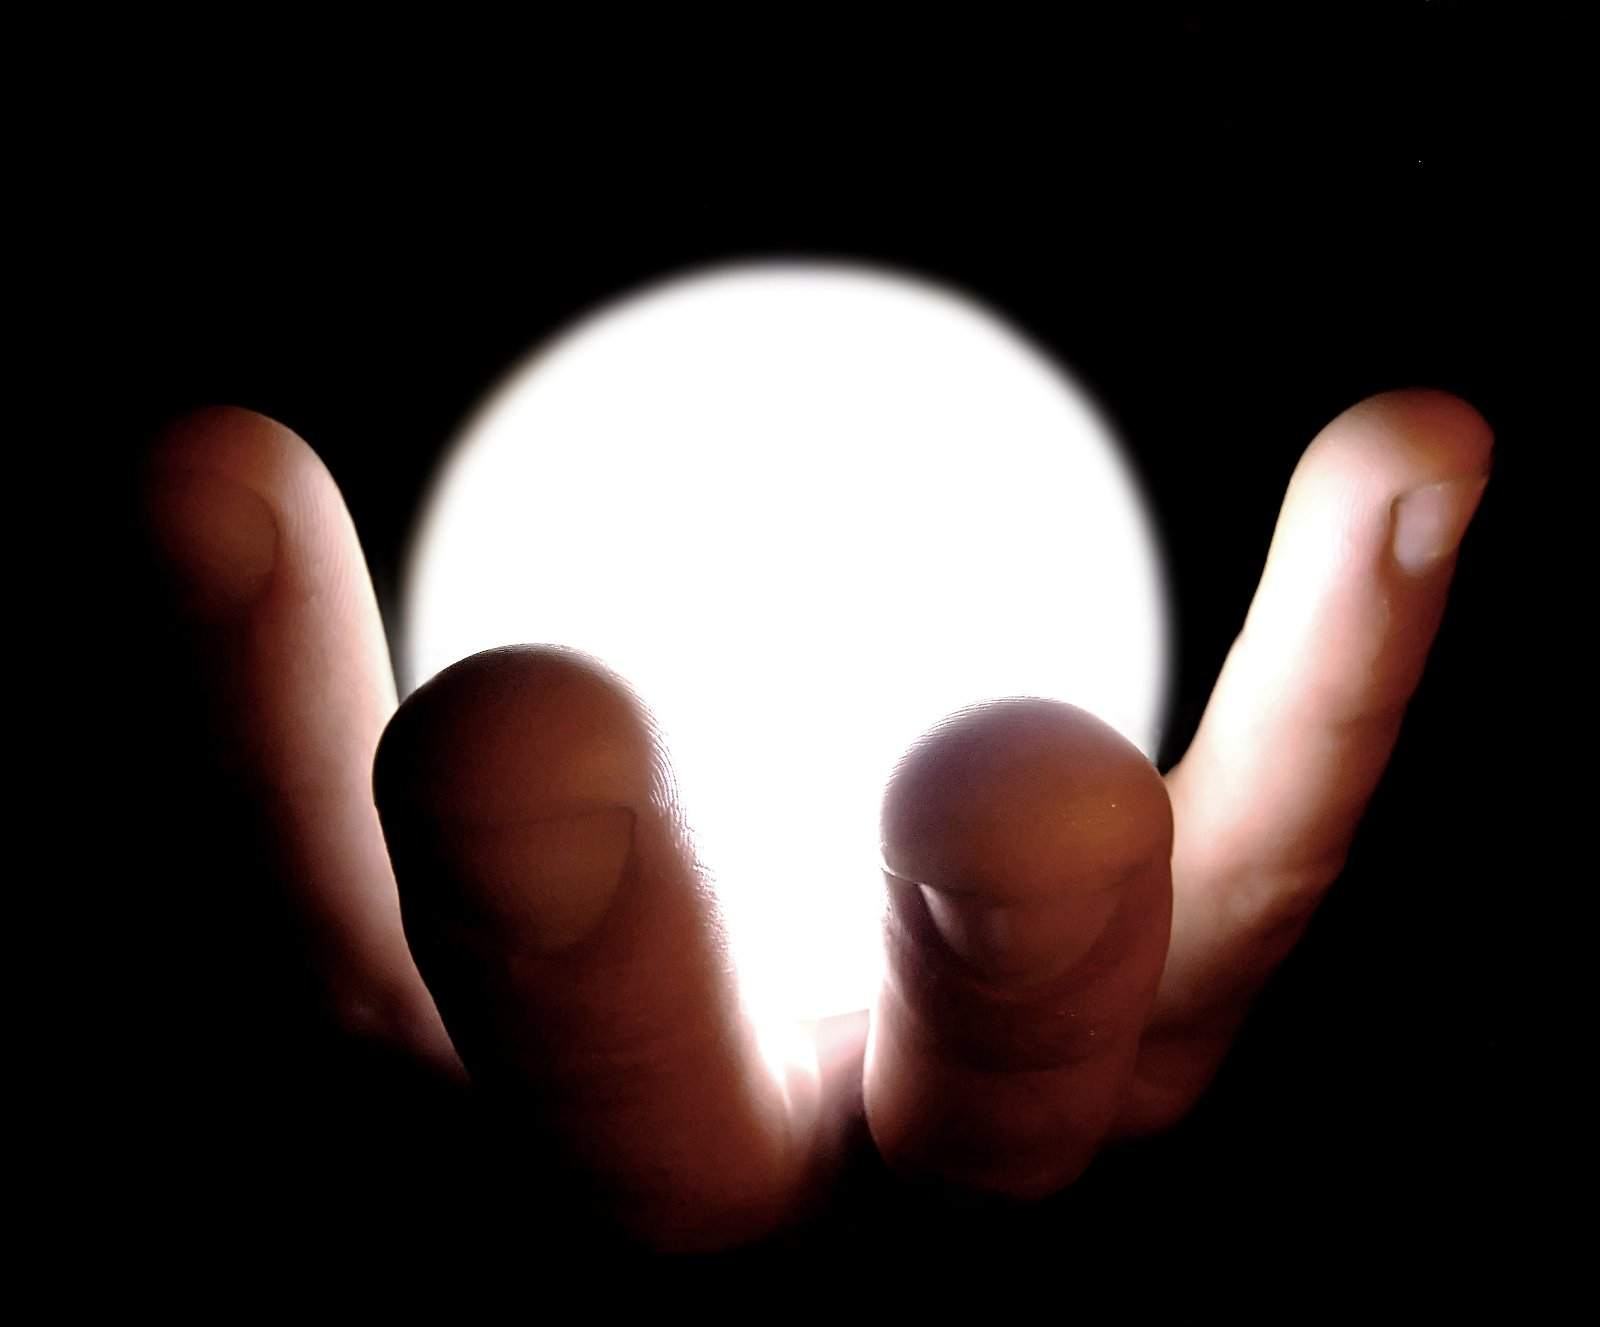 light bulb in a human hand - but lit up!